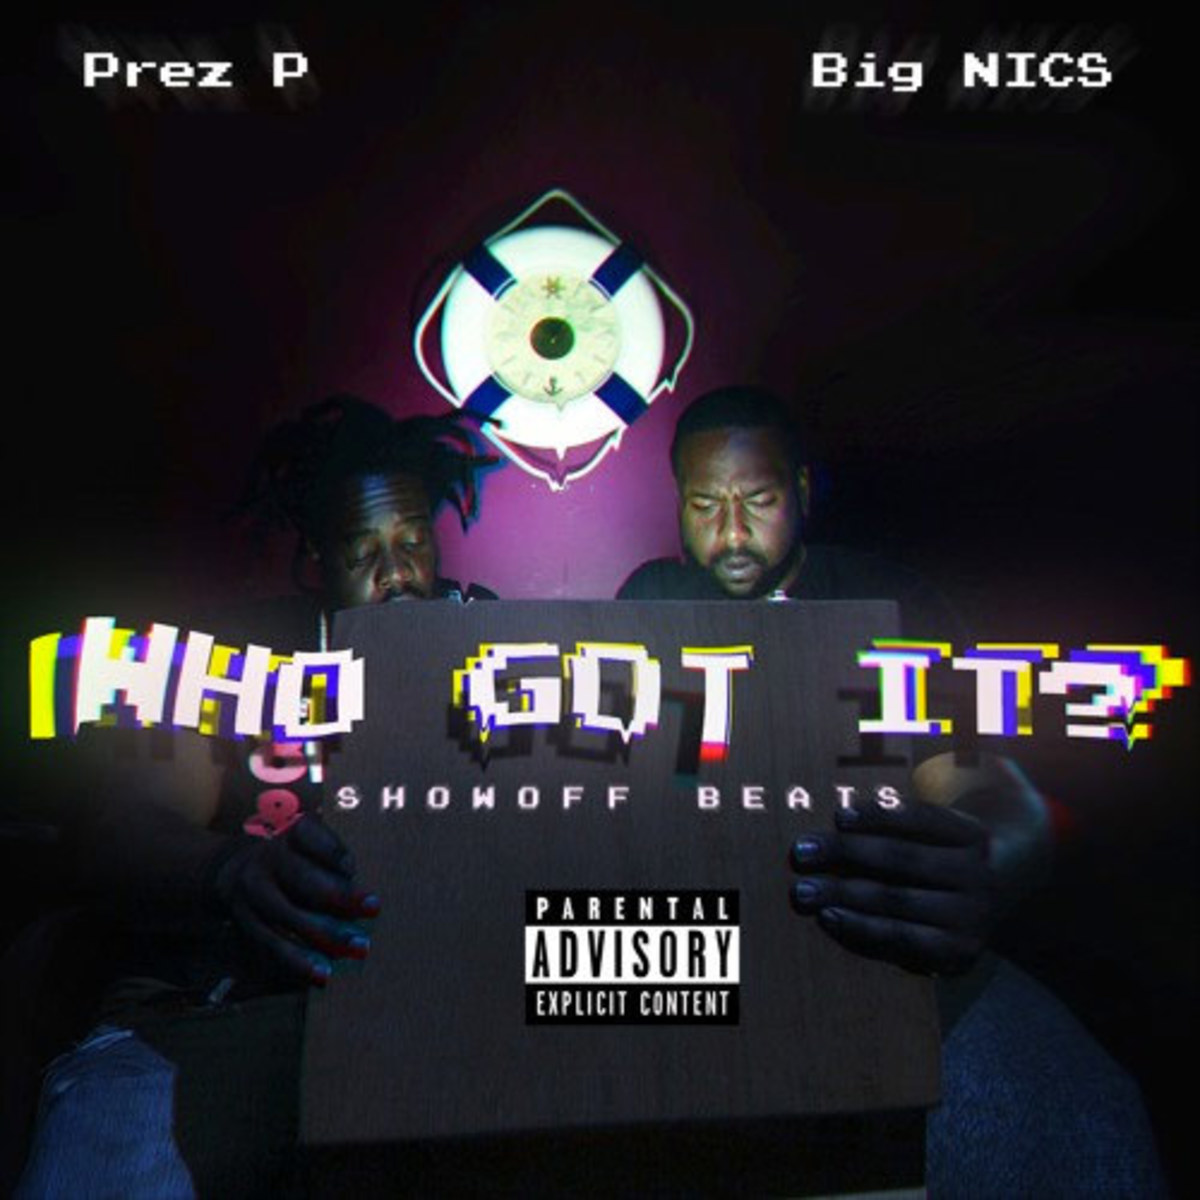 prez-p-big-nics-who-got-it.jpg